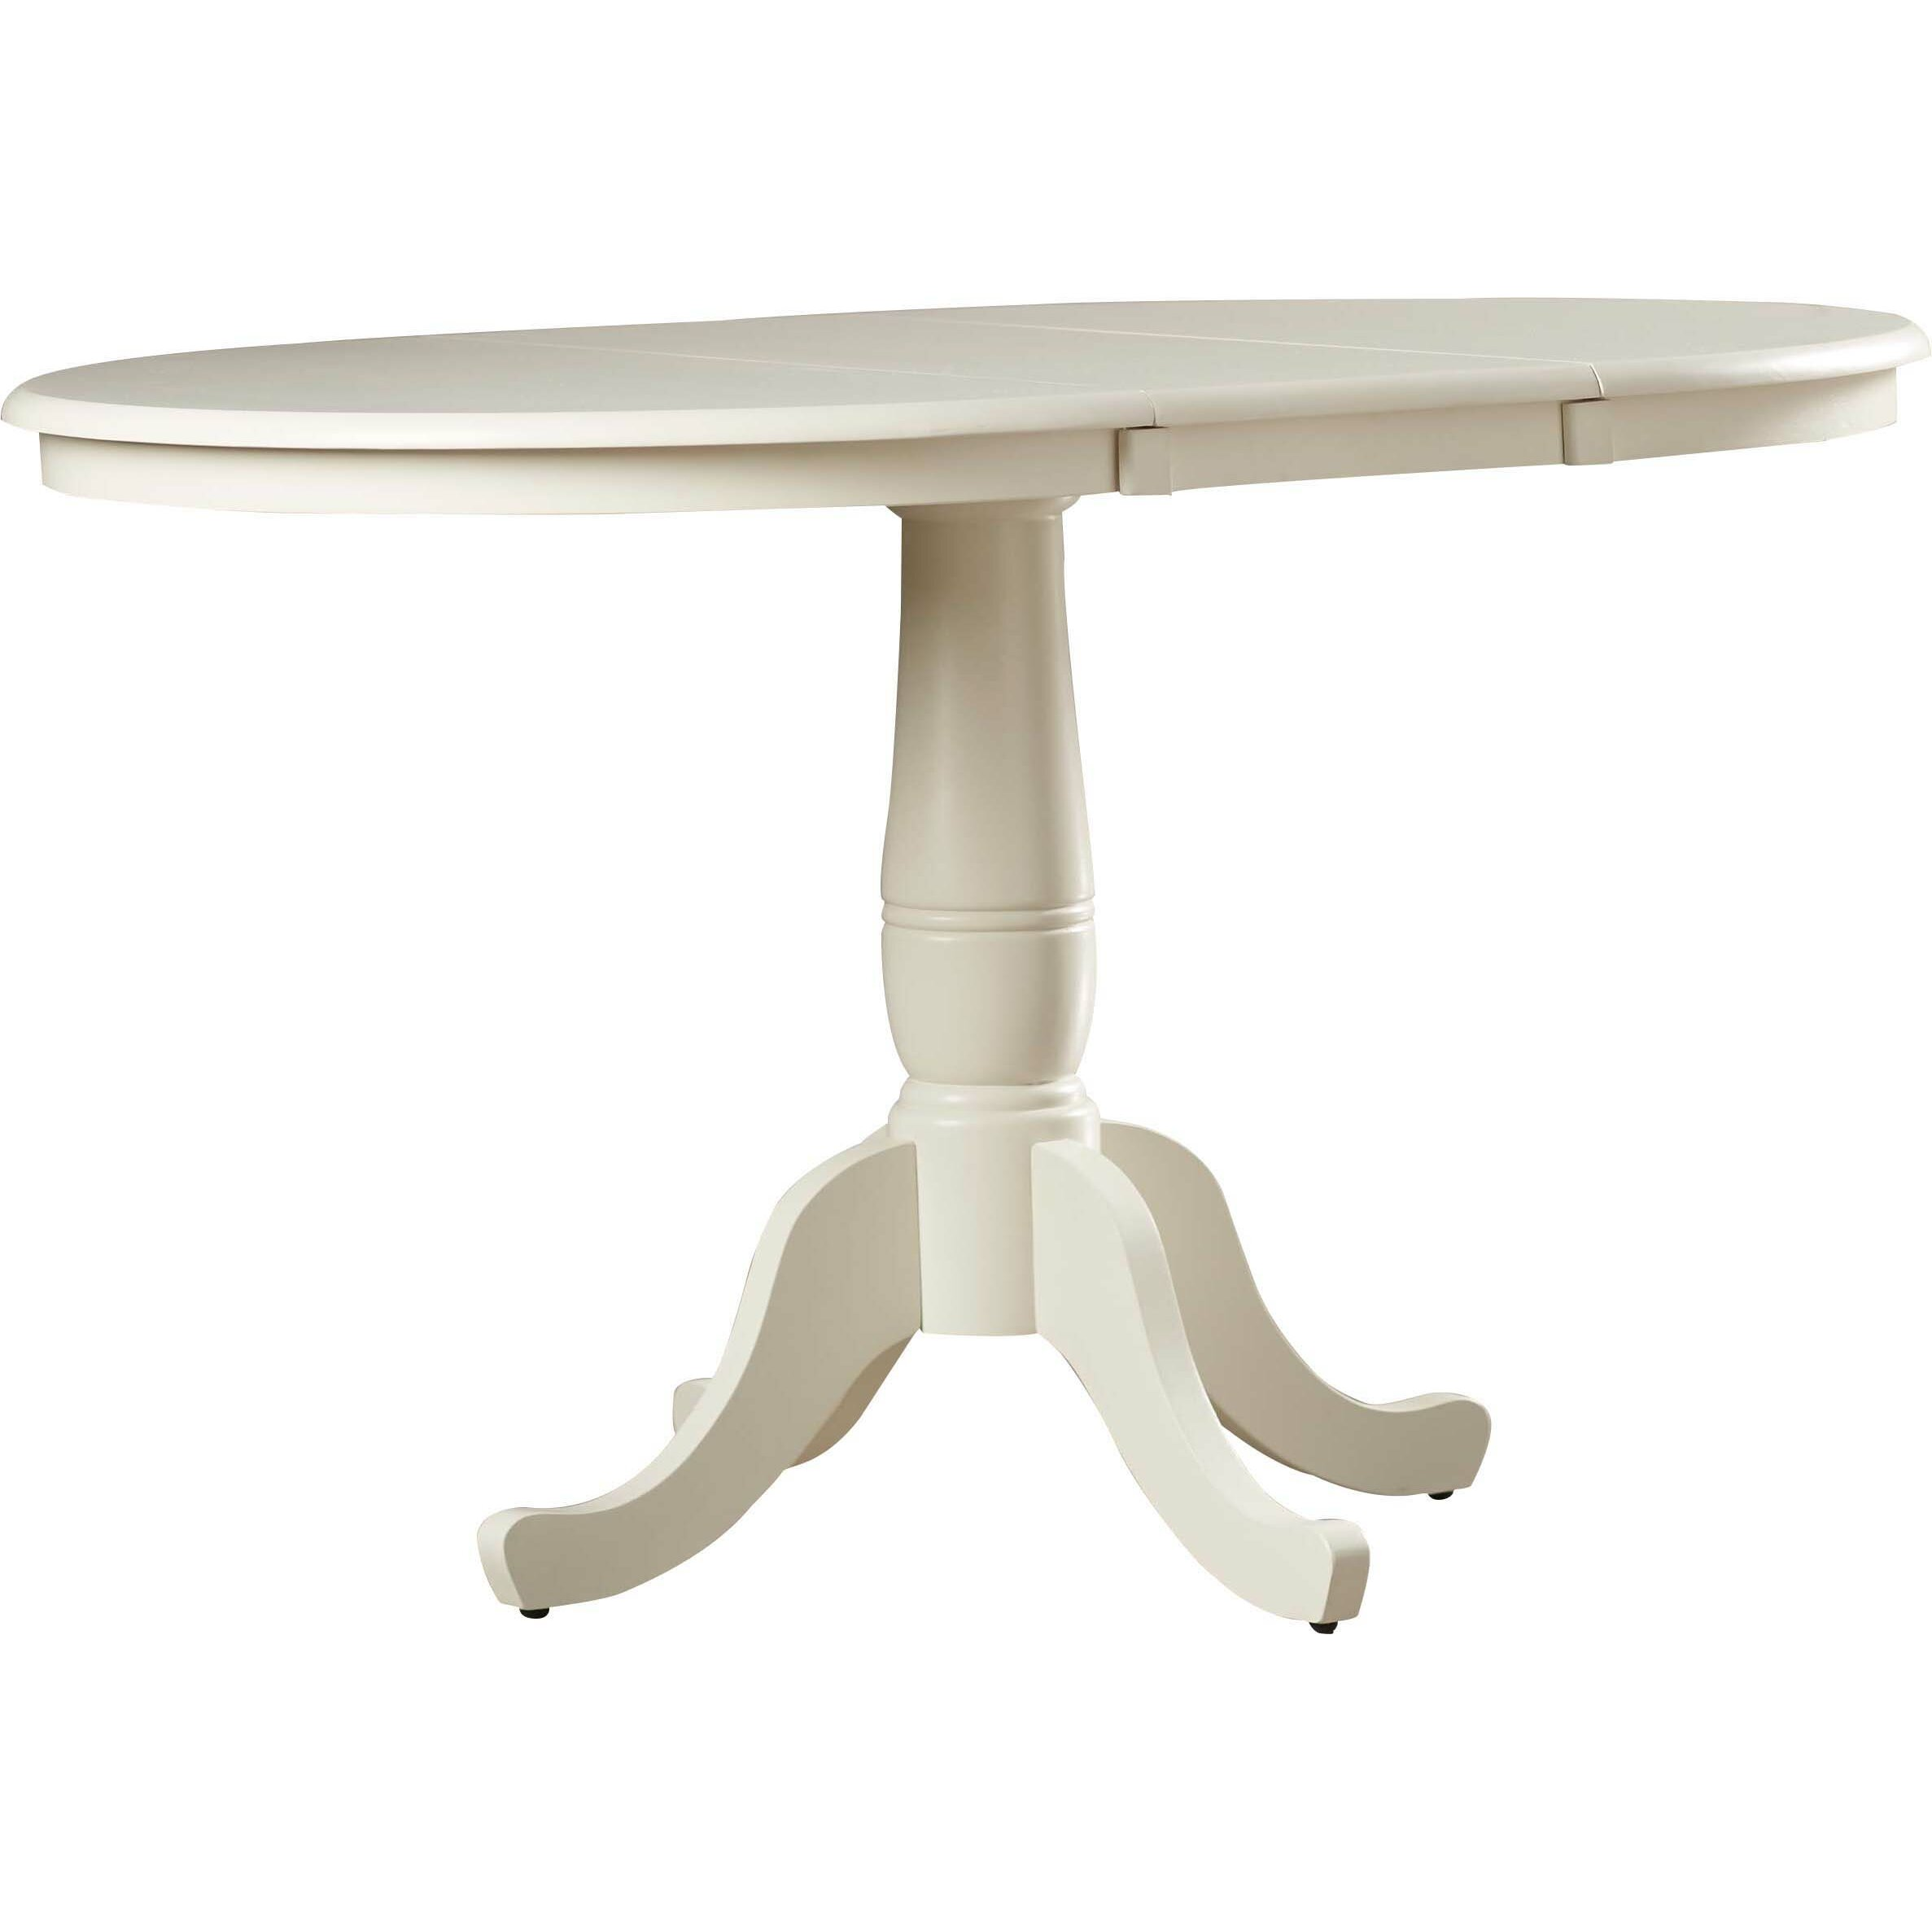 August grove 36 extendable round pedestal dining table for Round extendable dining table